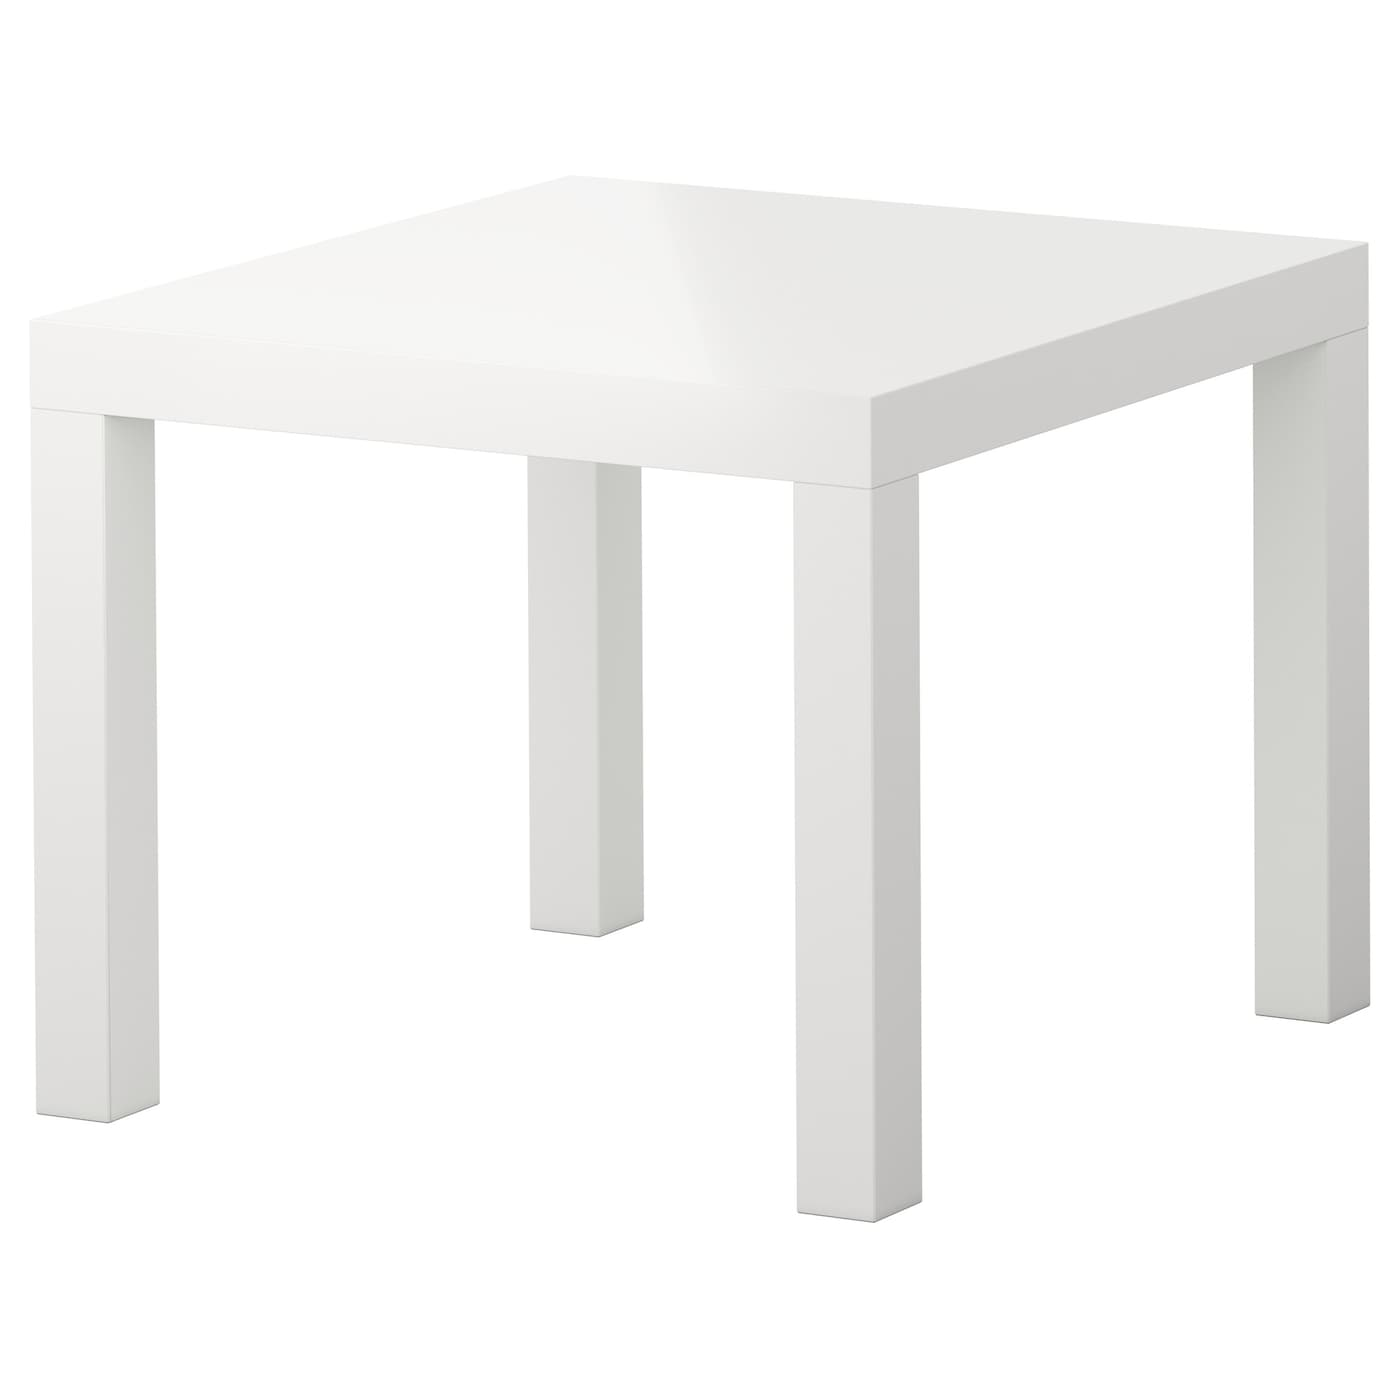 Lack side table high gloss white 55x55 cm ikea for Ikea end tables salon